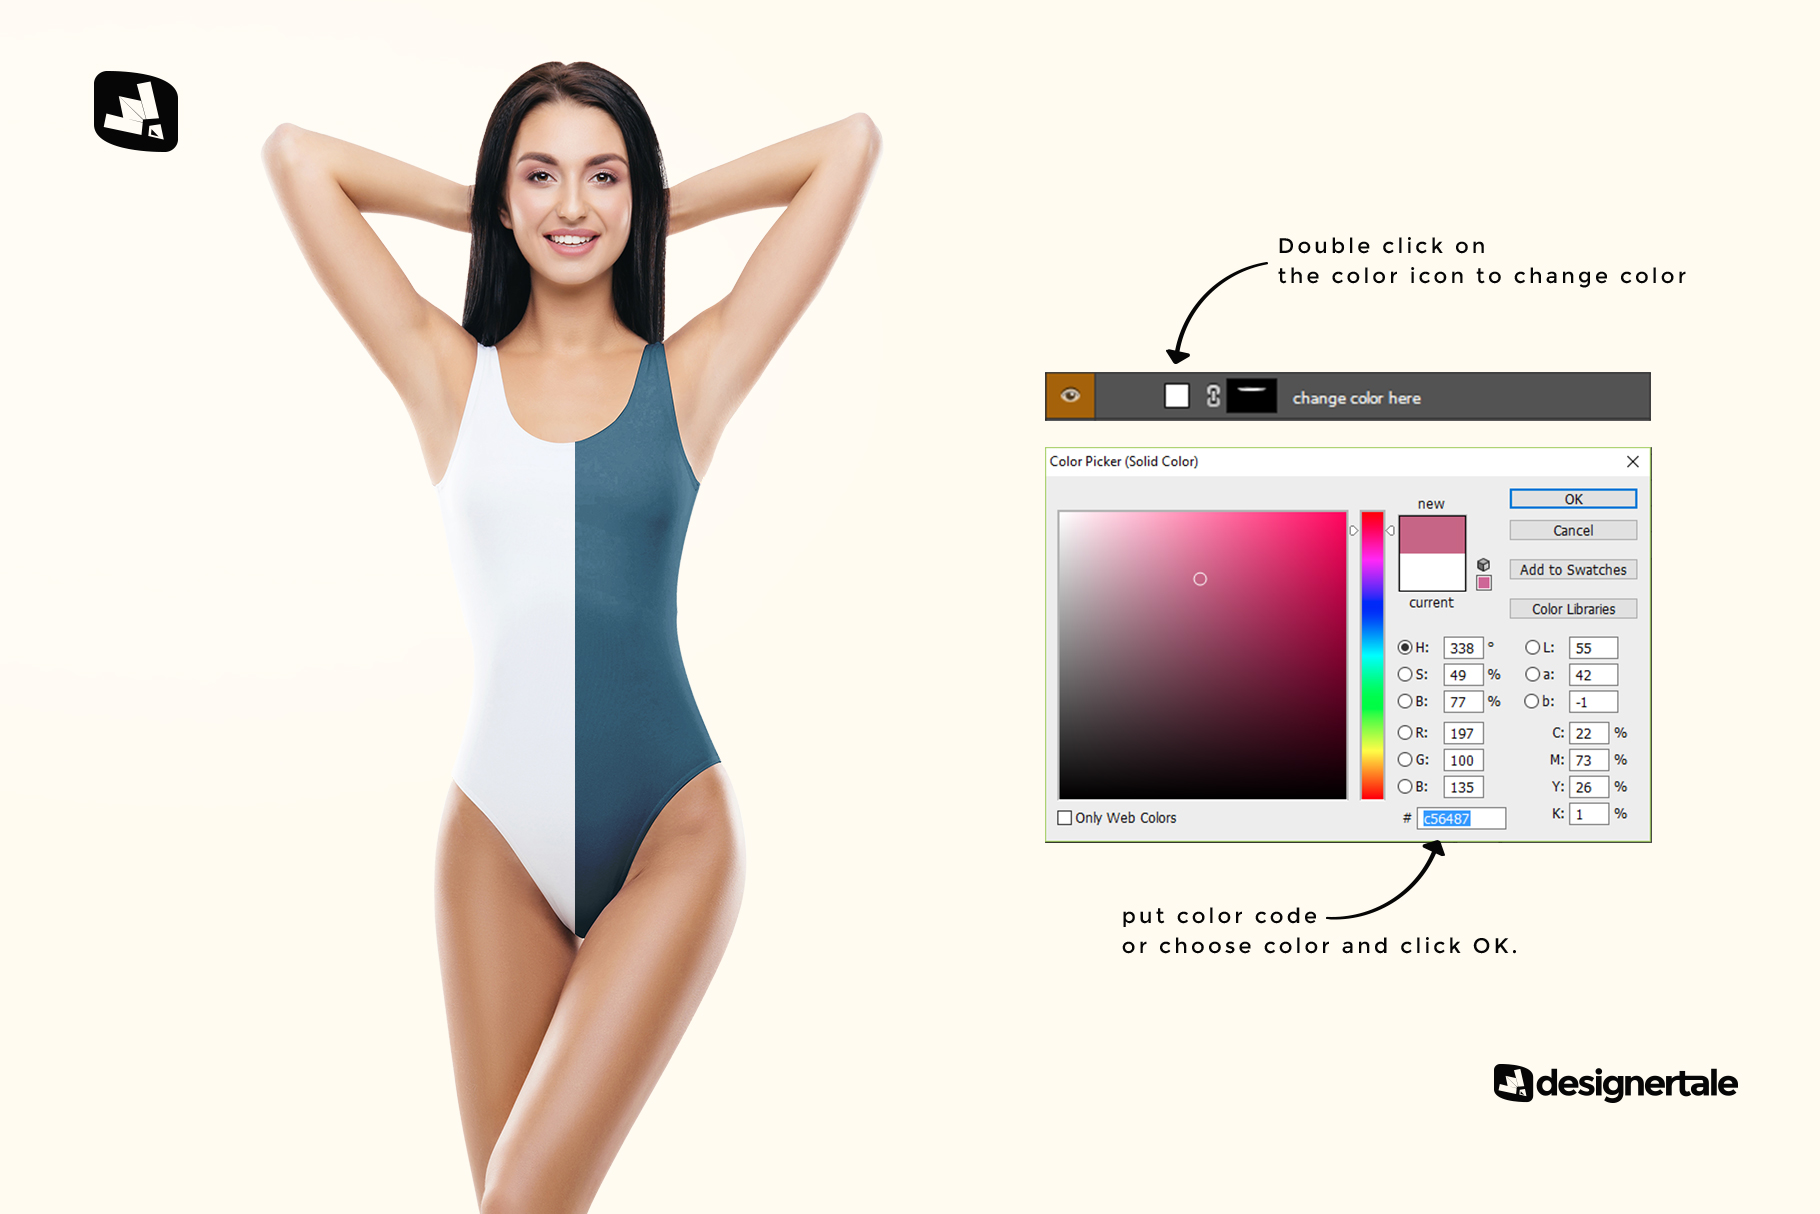 how to chanhe color of the women's swimsuit mockup